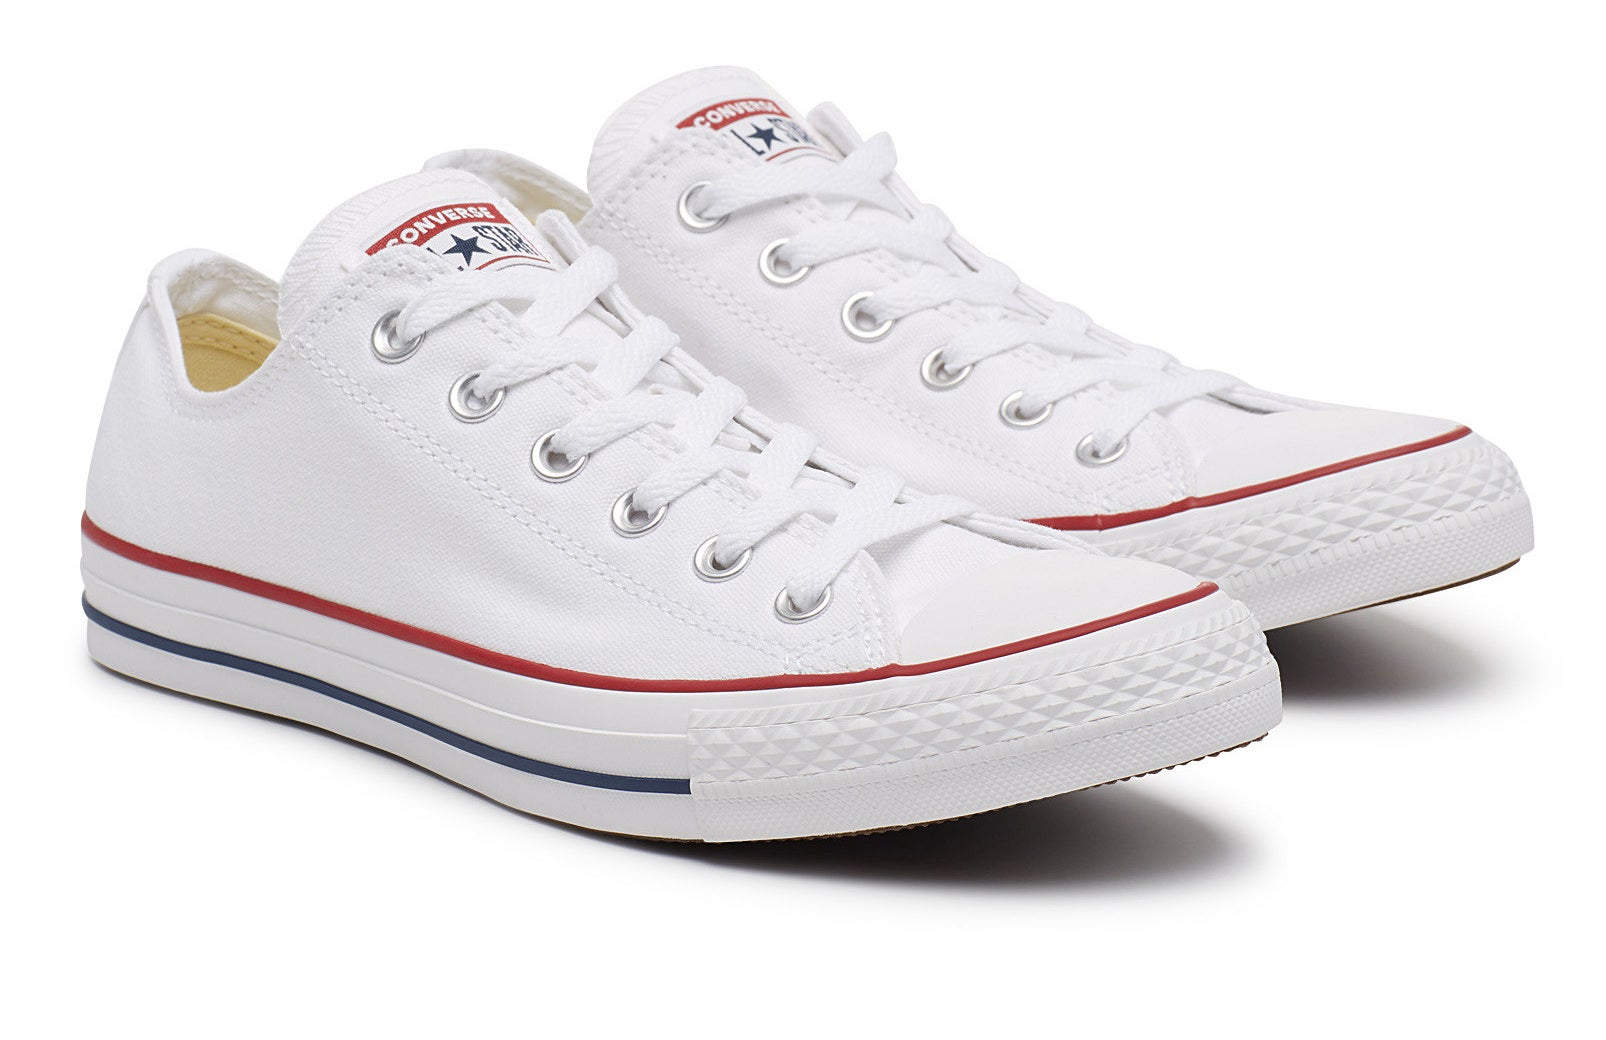 A pair of low rise Converse shoes